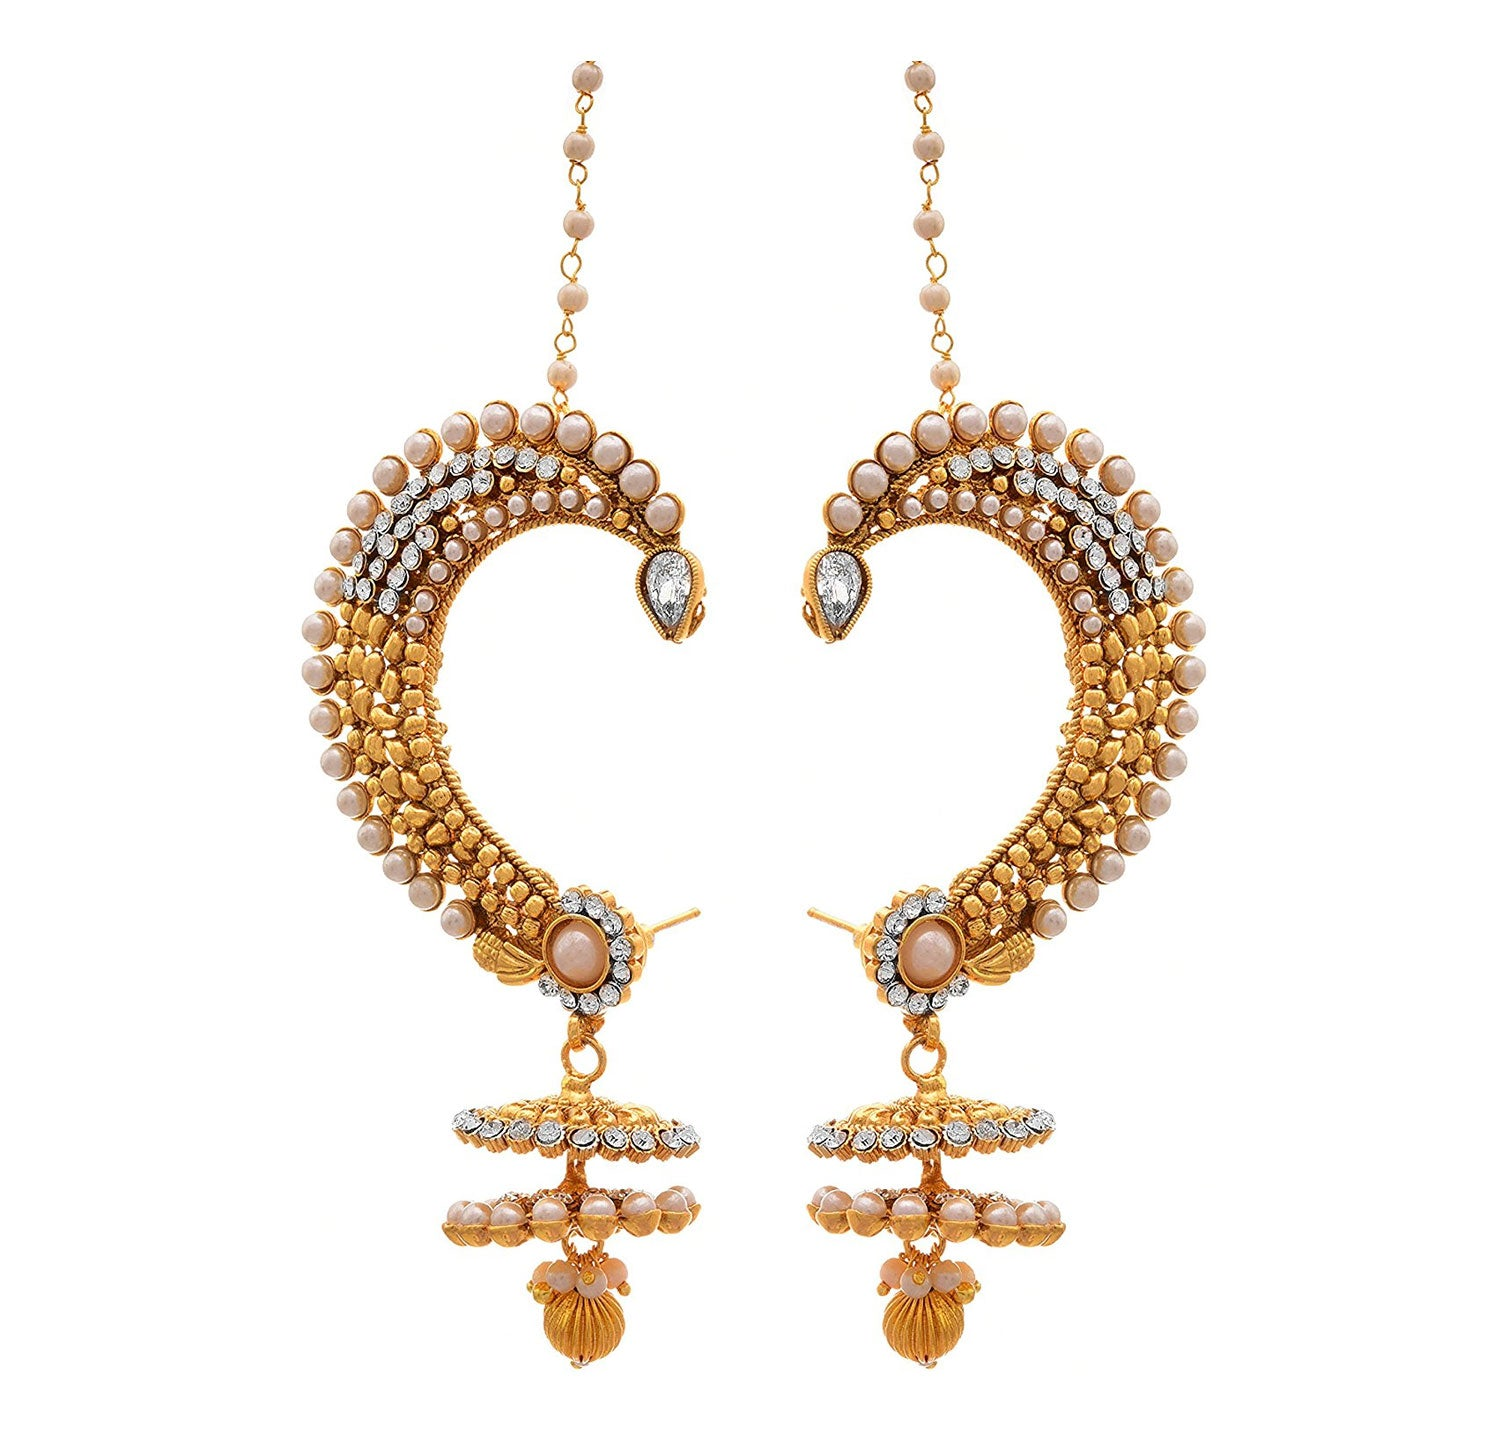 Traditional Ethnic One Gram Gold Plated White Diamond Pearls Designer Ear Cuff Earrings for Women & Girls.